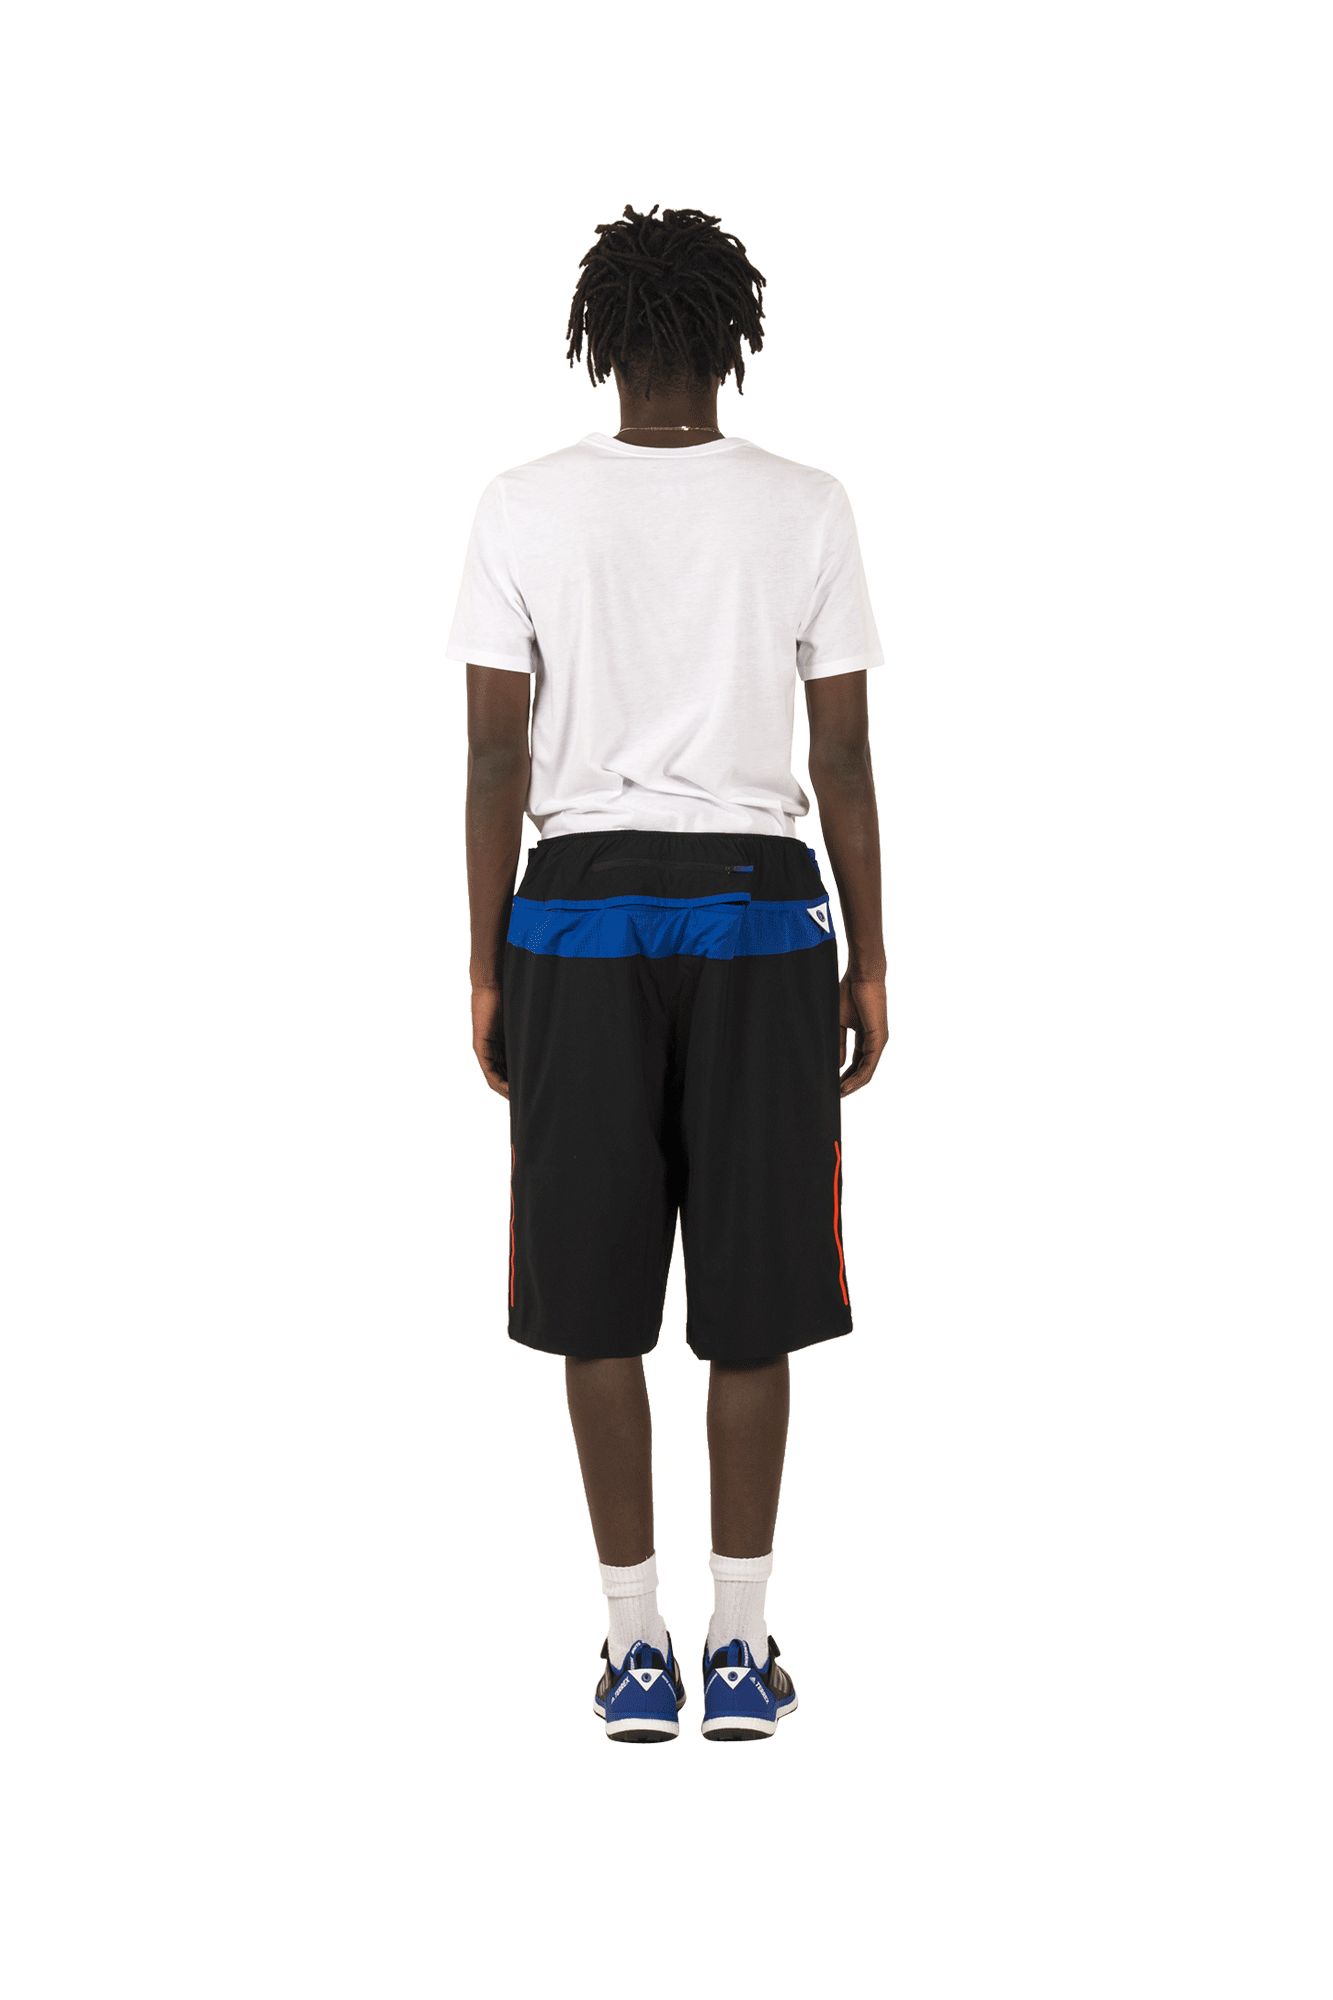 White Mountaineering x Adidas Originals Shorts Terrex WM Short Black EB4574#000#BLACK#S - One Block Down